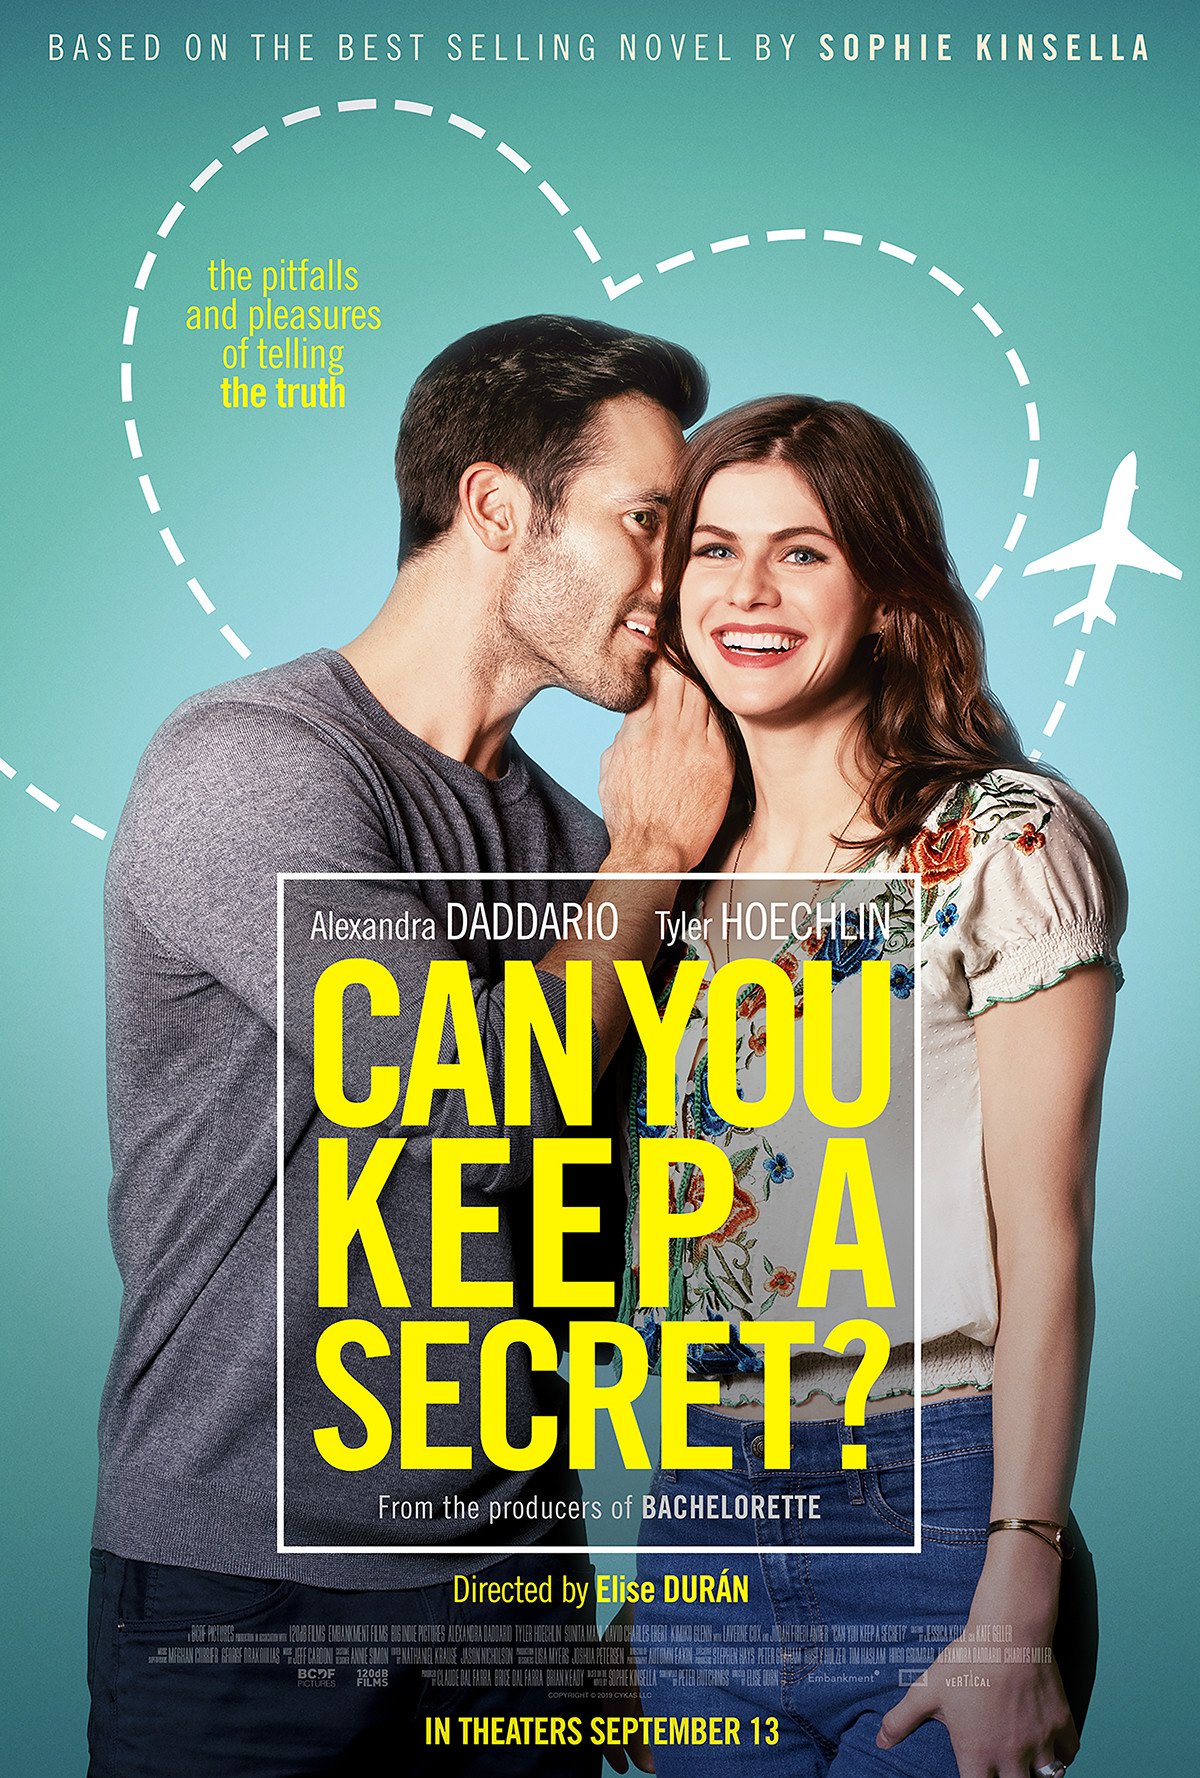 Dokazes udrzet tajemstvi? / Can You Keep a Secret? (2019)[WebRip] = CSFD 55%